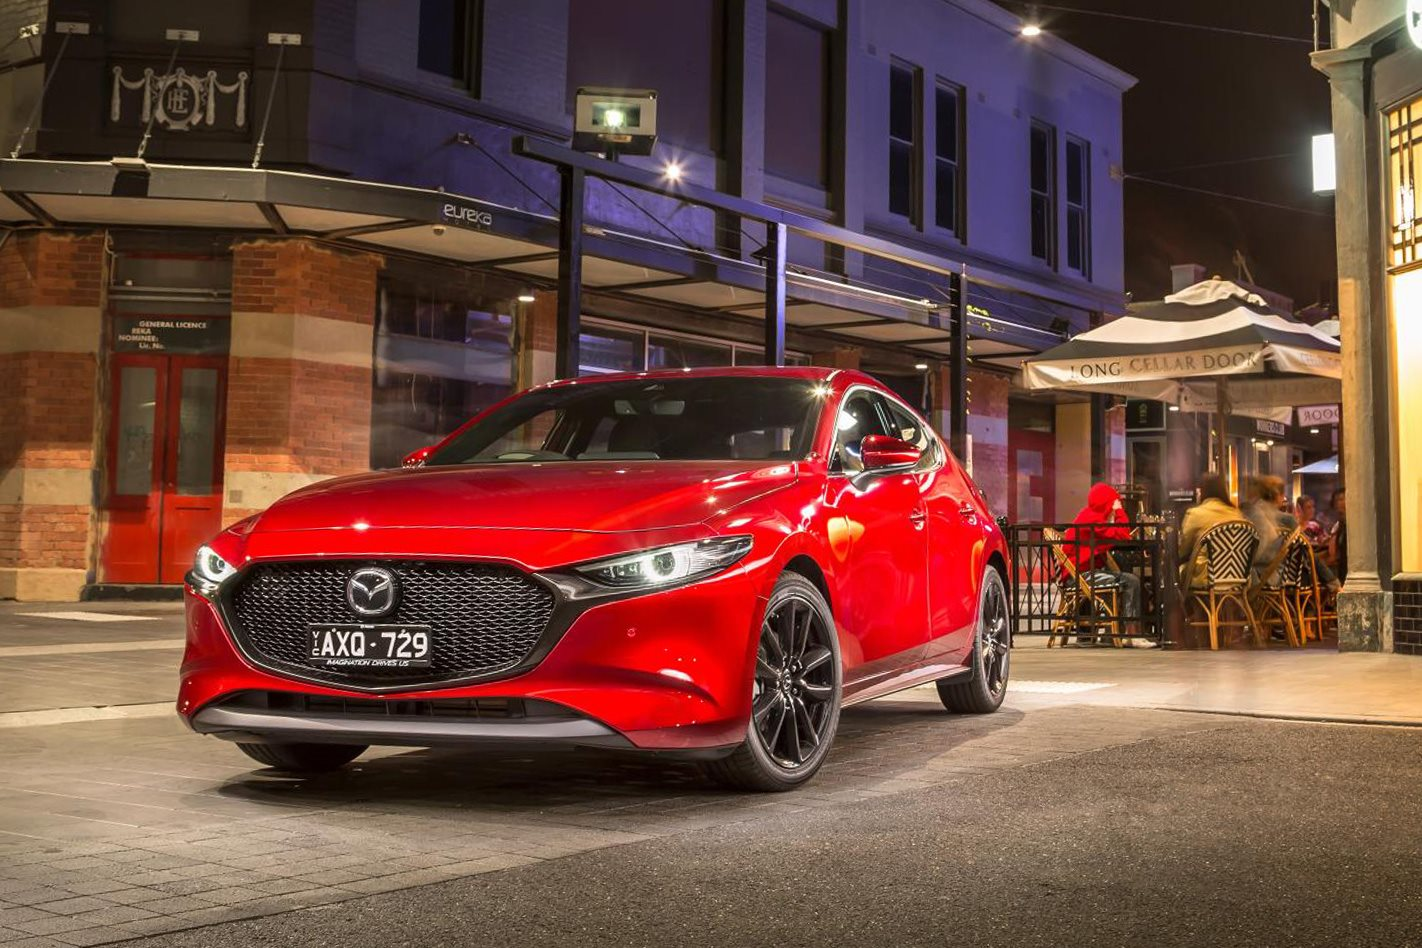 2019 Mazda 3: everything you need to know